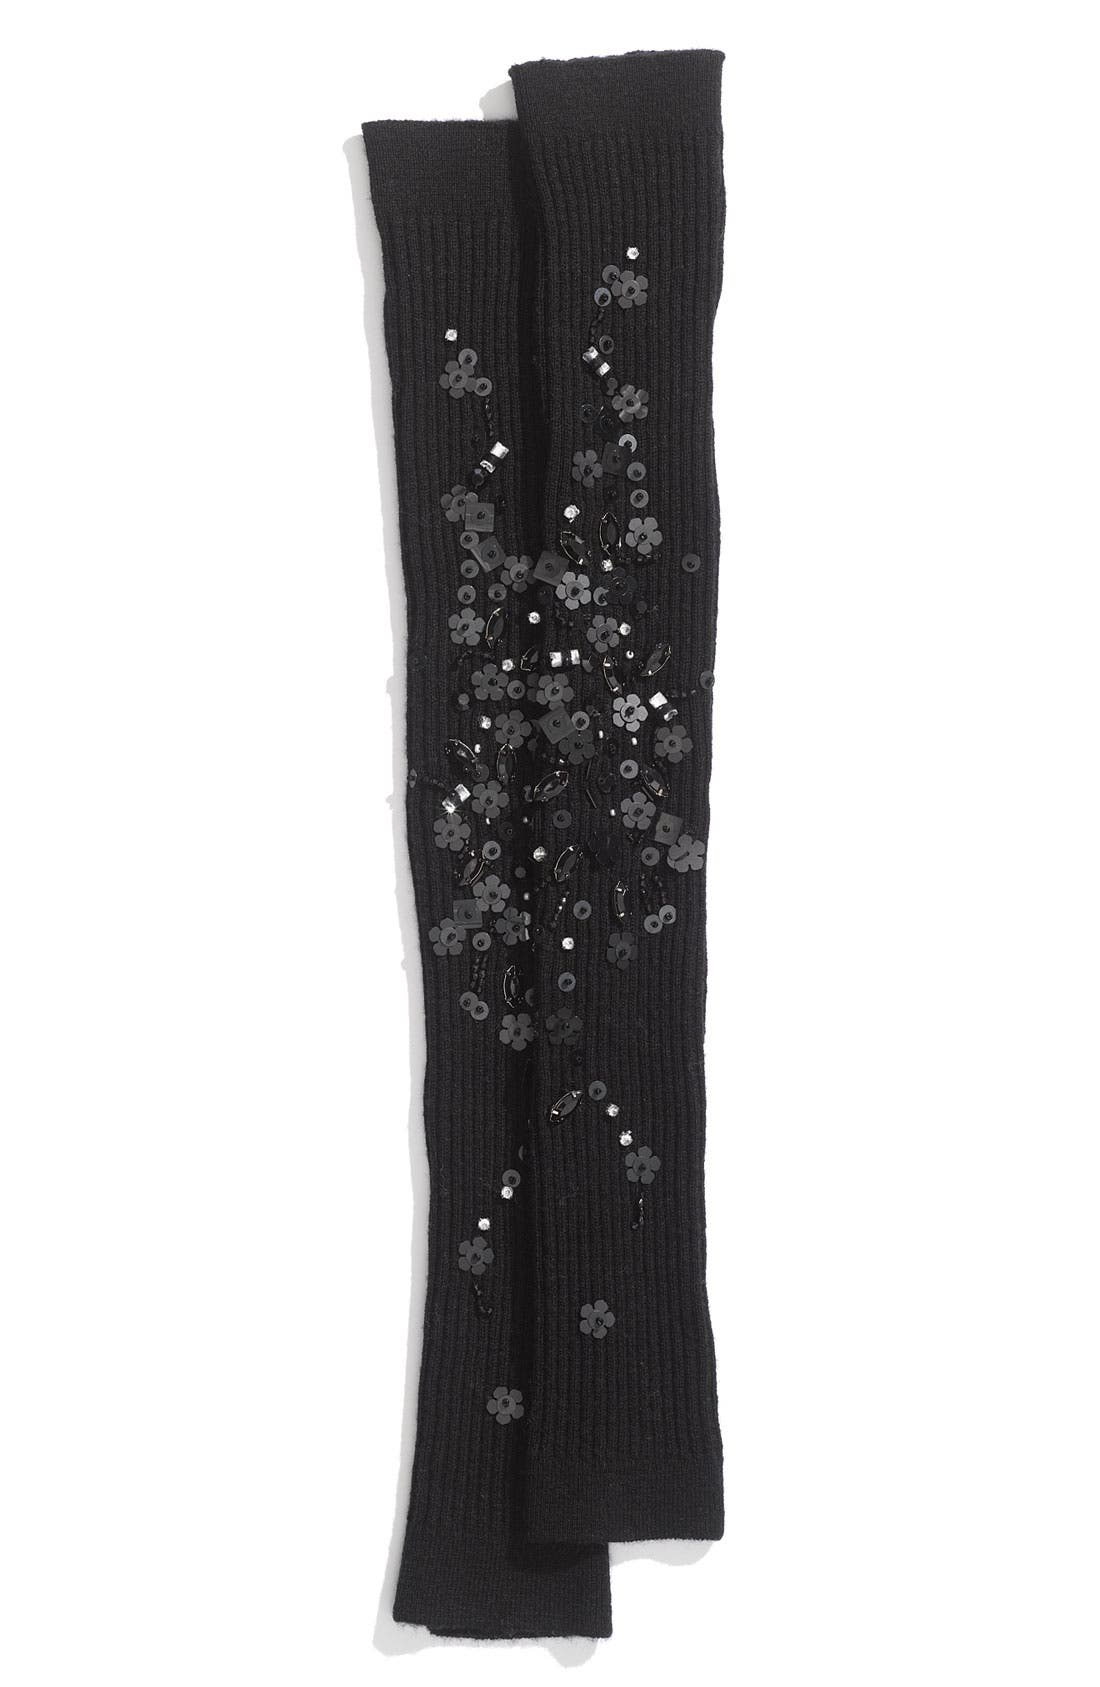 JUICY COUTURE, 'Ribs & Gems' Wool Arm & Leg Warmers, Alternate thumbnail 2, color, 001